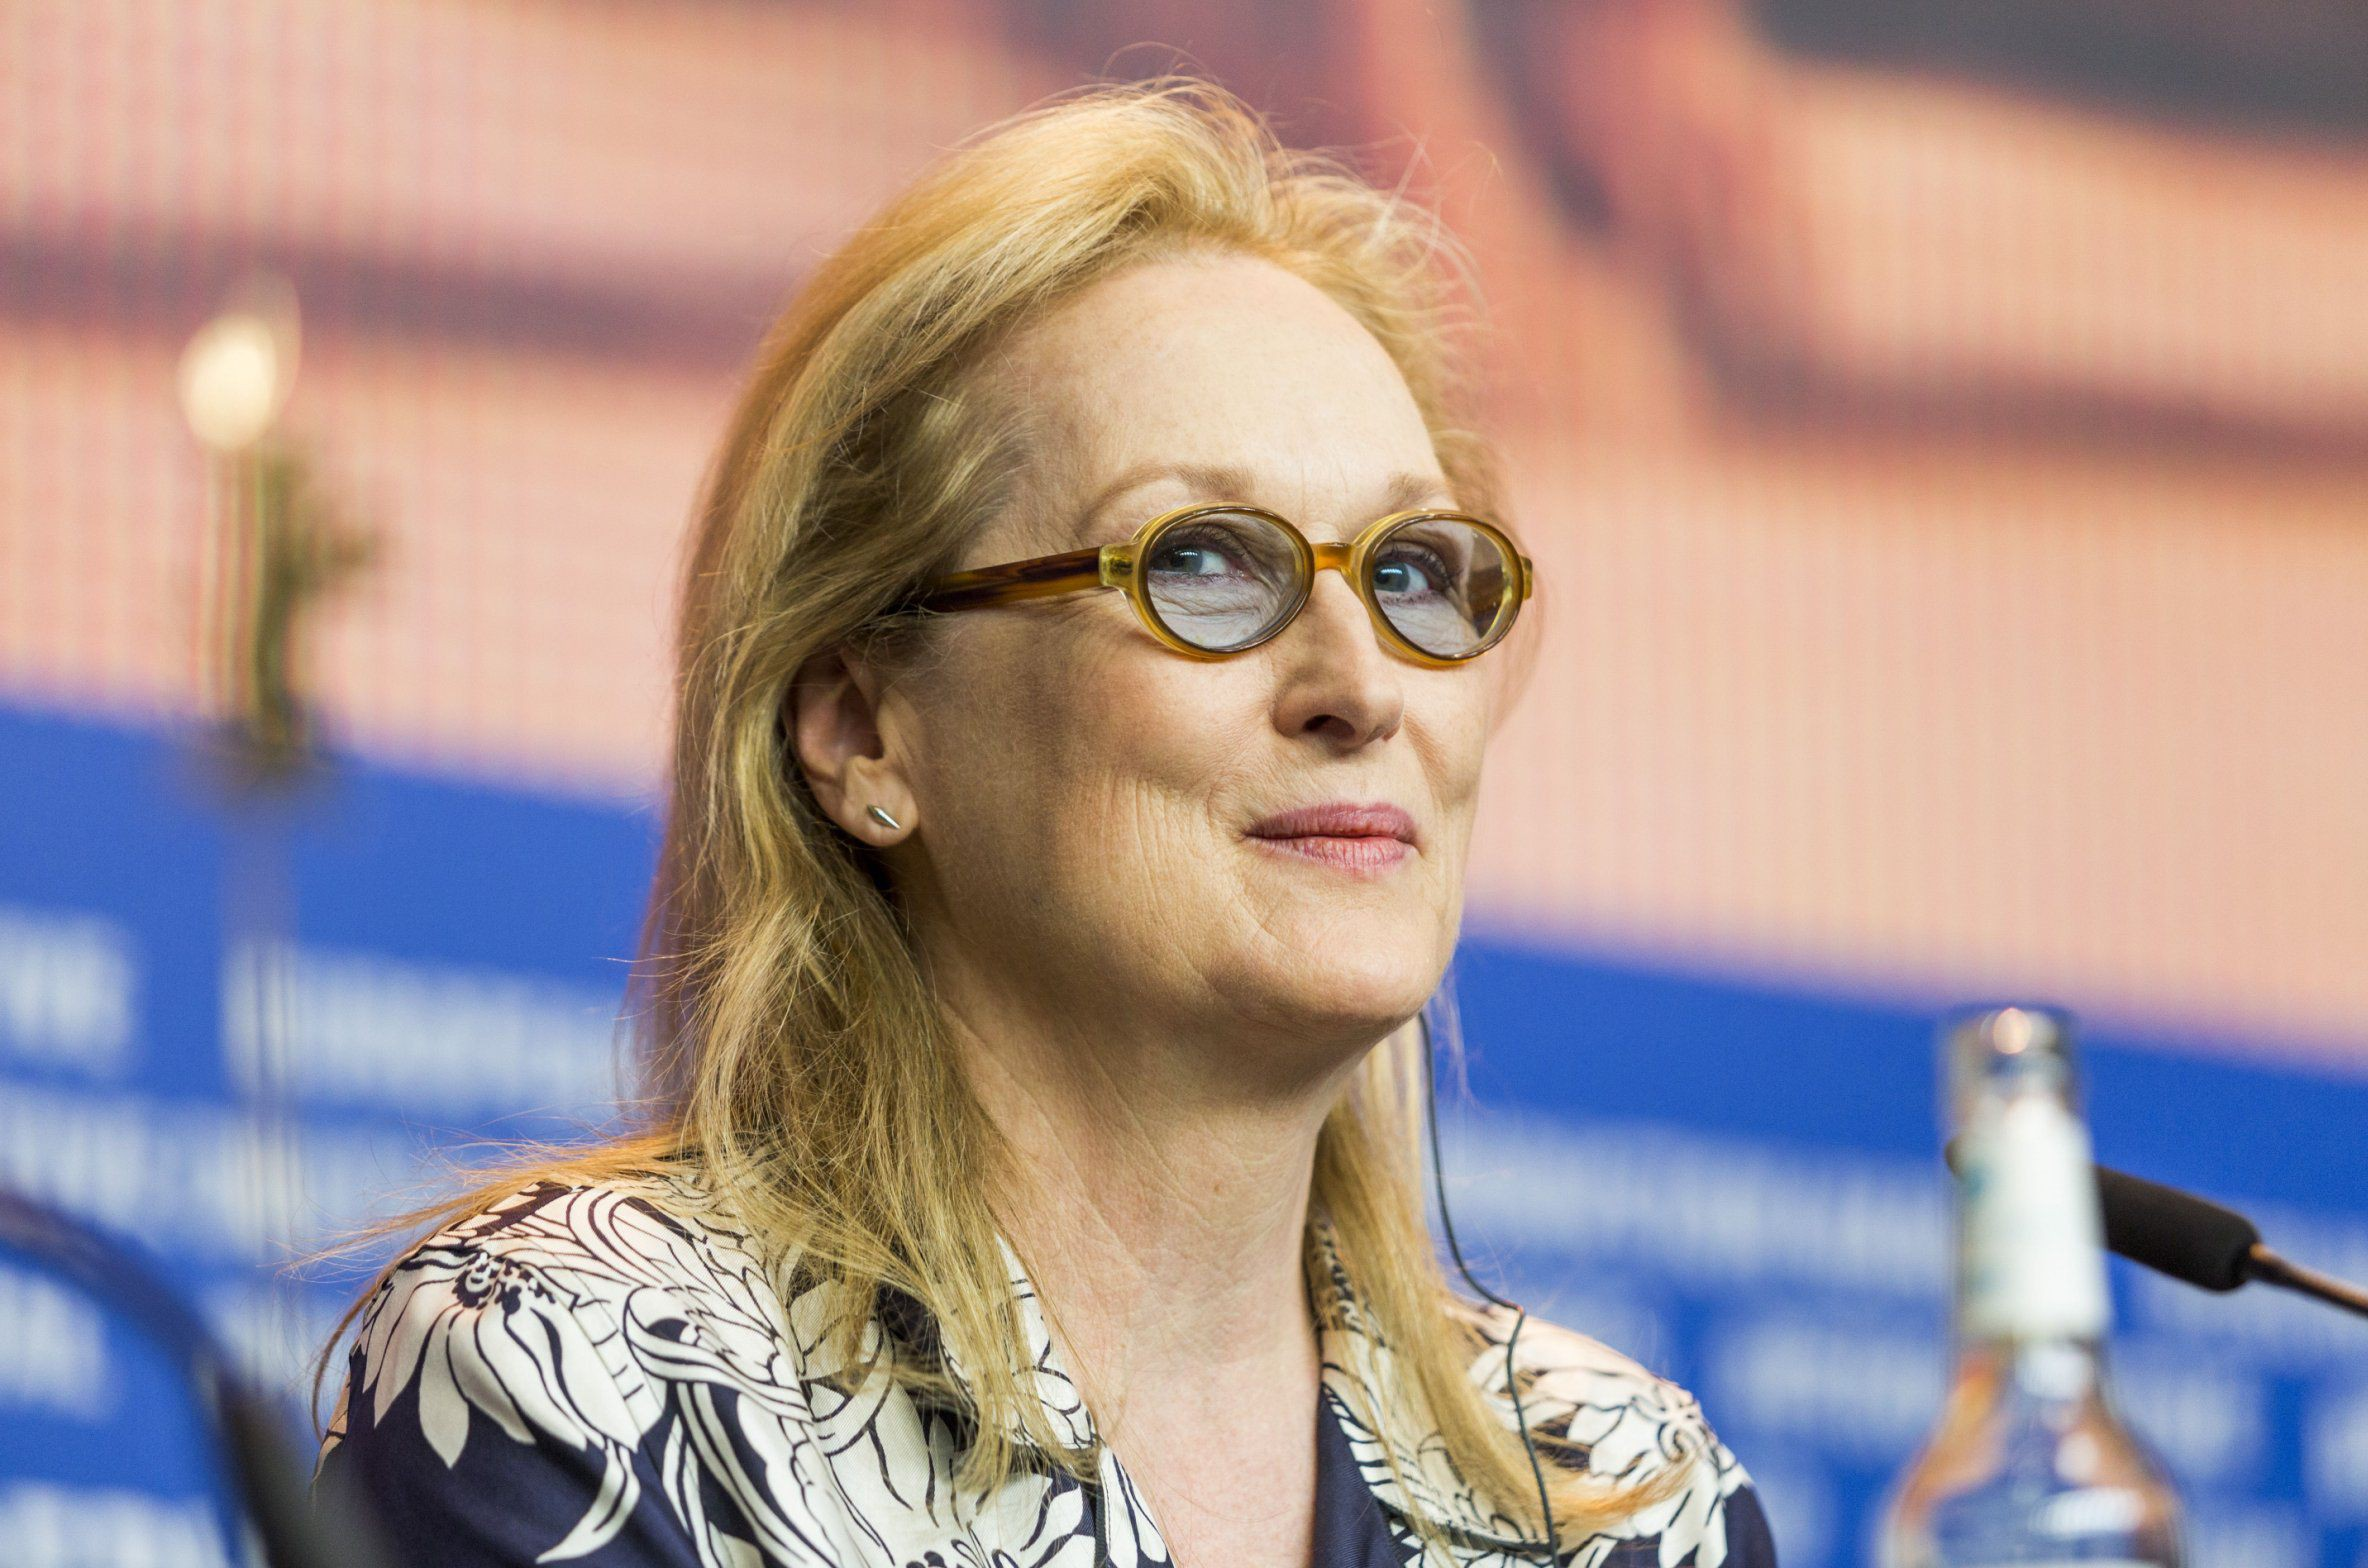 Meryl Streep declares 'we're all Africans' in defence of all-white Berlin Film Festival judging panel